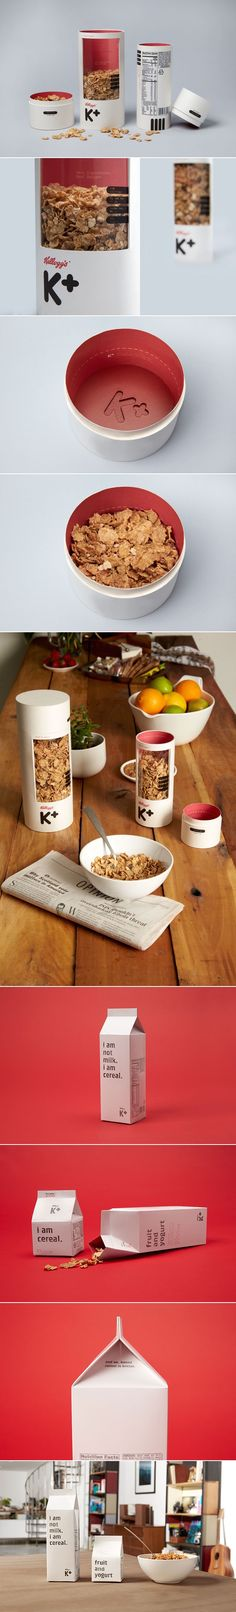 A creative redesign concept of Kellogg's 'Special K' cereal for adults